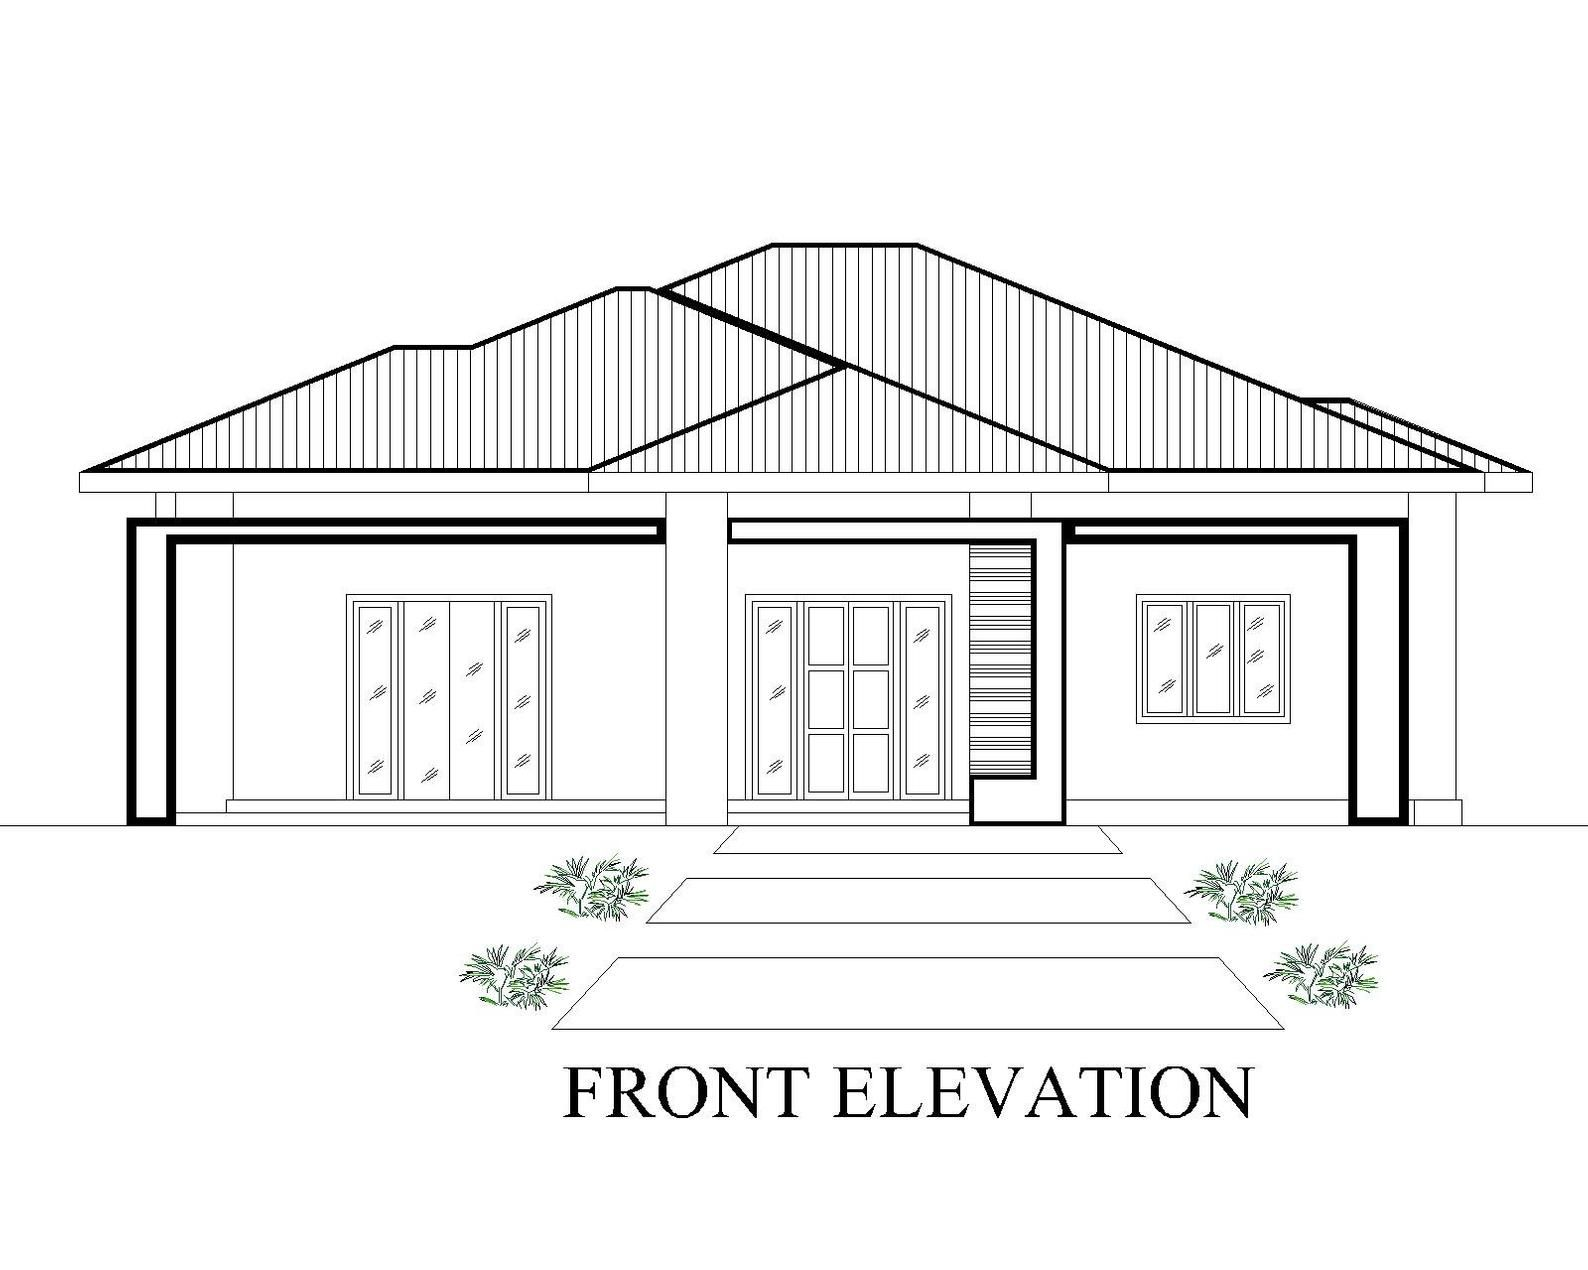 Modern Tiny House Home Floor Cabin Cottege Building plans 3 Bedroom & 2 bath room with Garage and AUTO CAD File